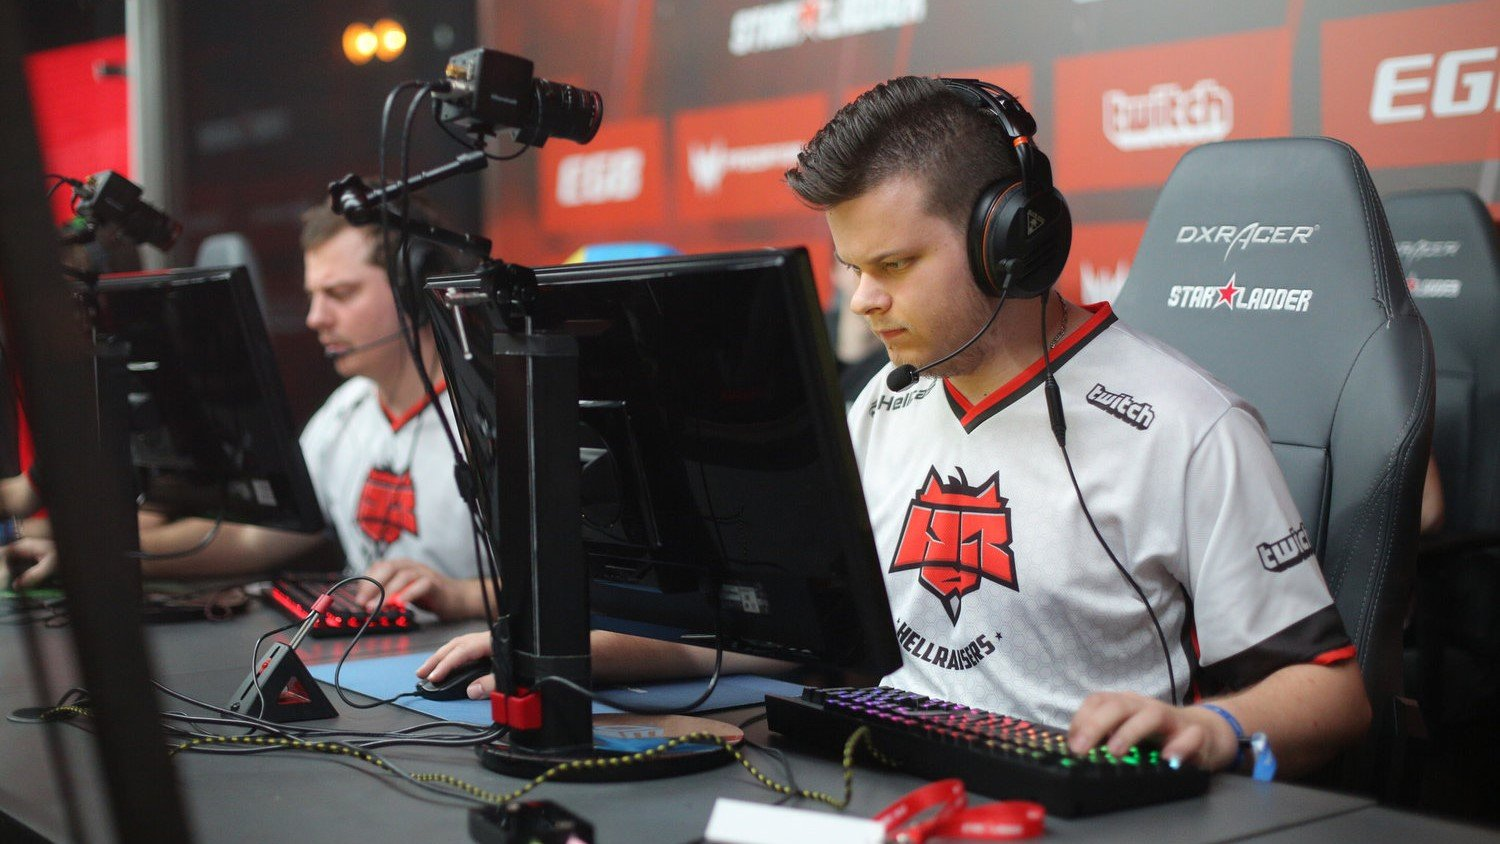 DeadFox moves from CS:GO to Valorant, joins Need more DM